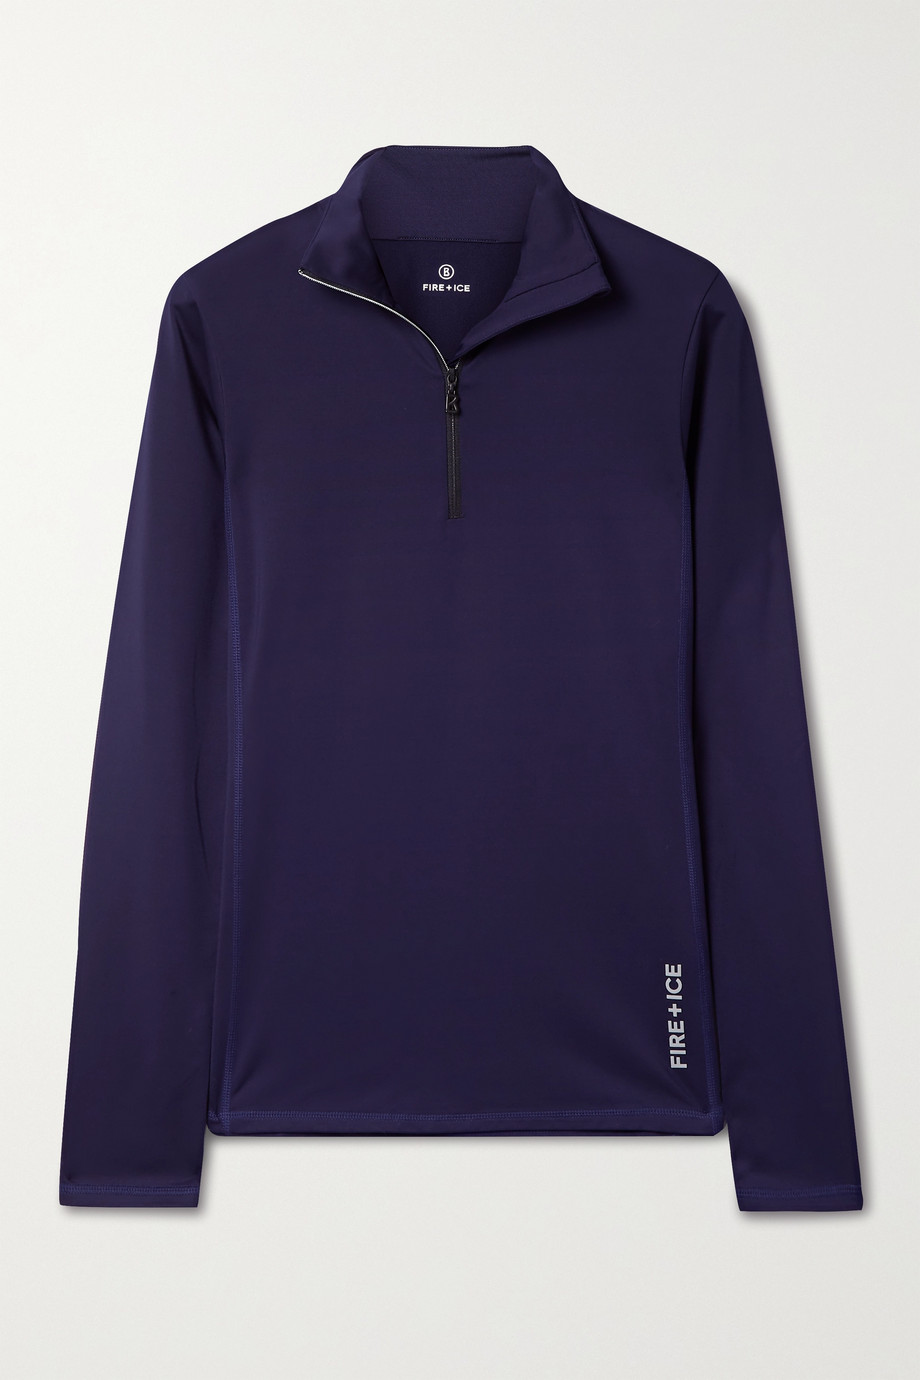 BOGNER FIRE+ICE Margo 2 stretch-jersey base layer